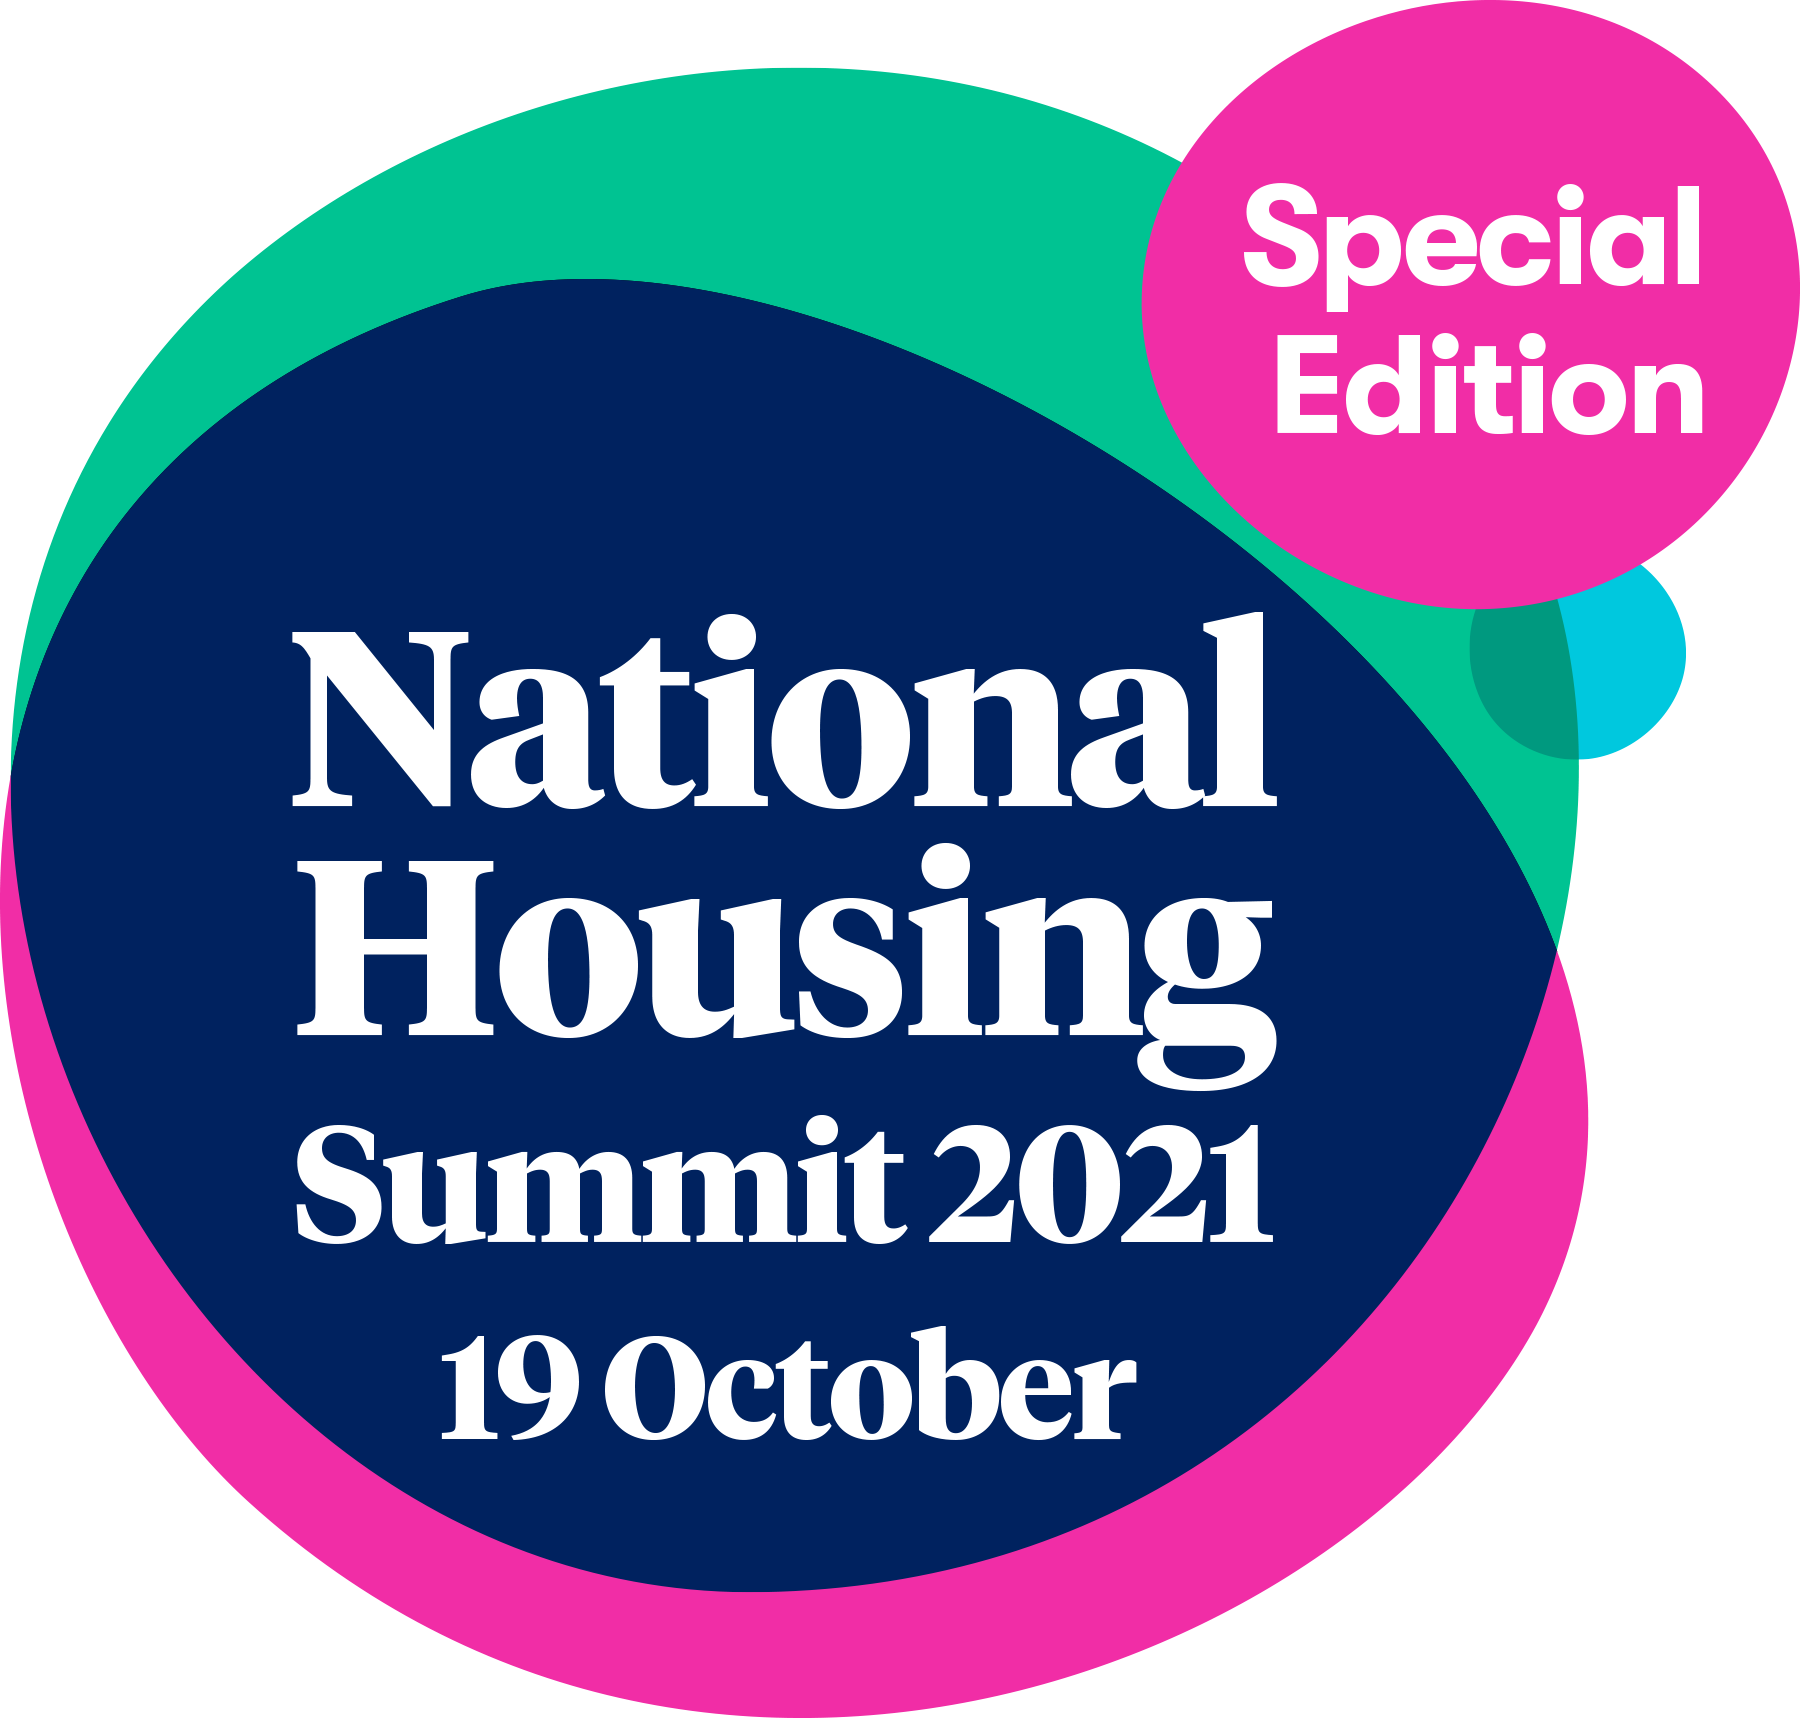 National Housing Summit - Special Edition